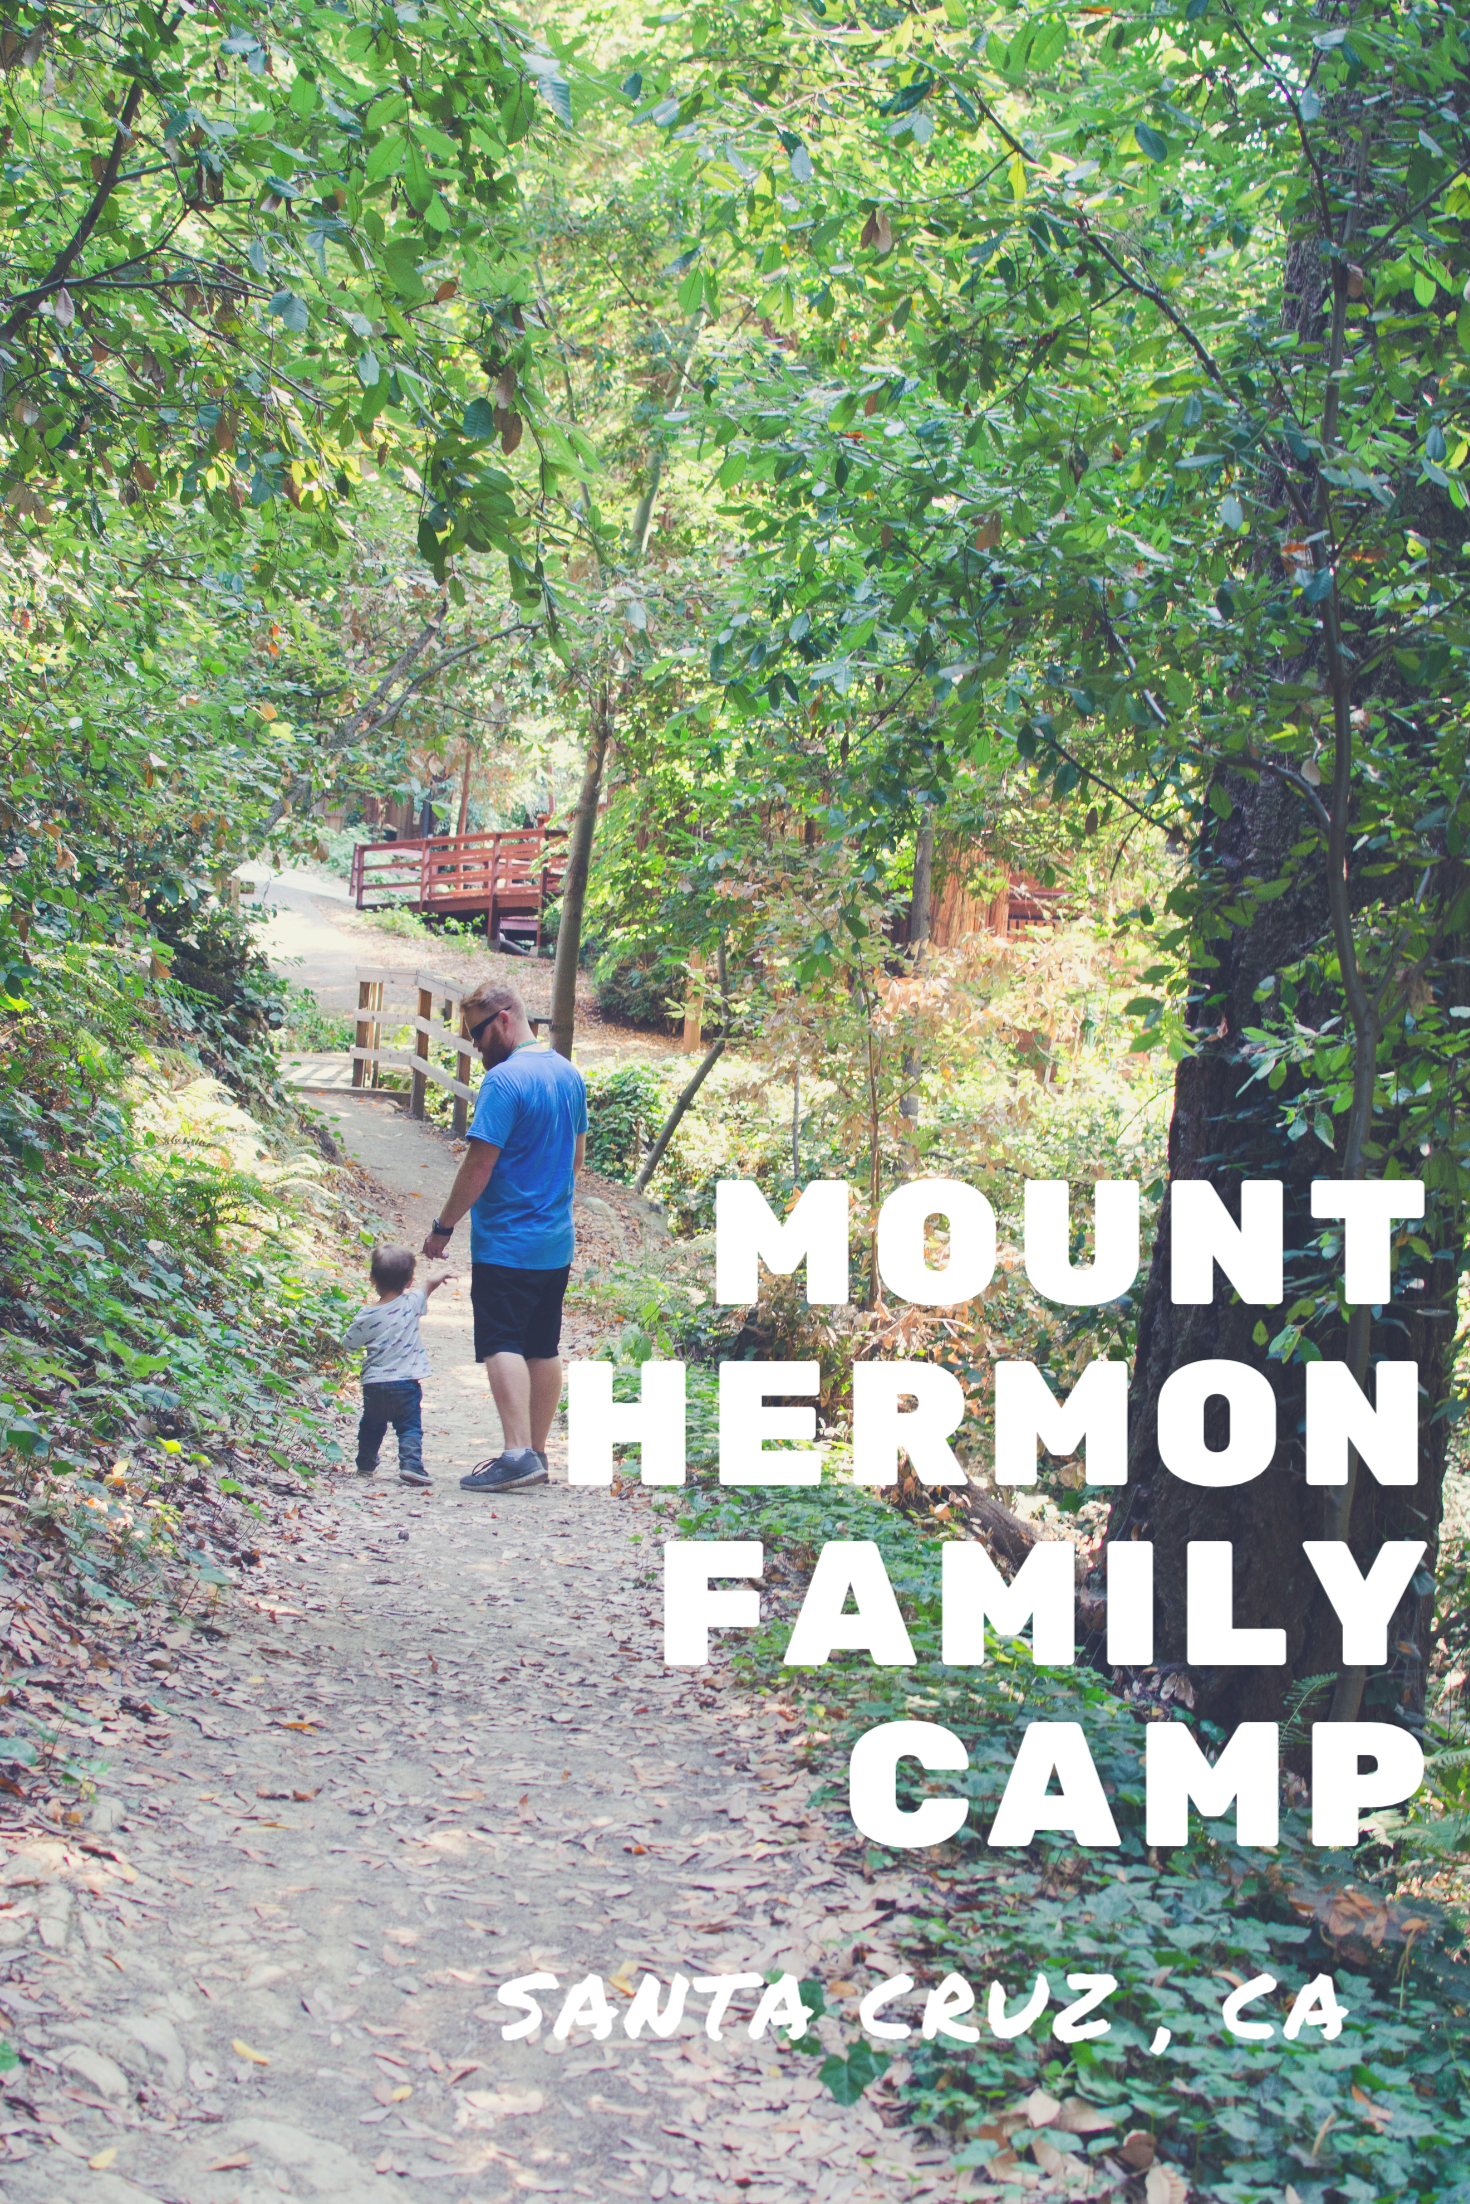 Mount Hermon Family Caamp